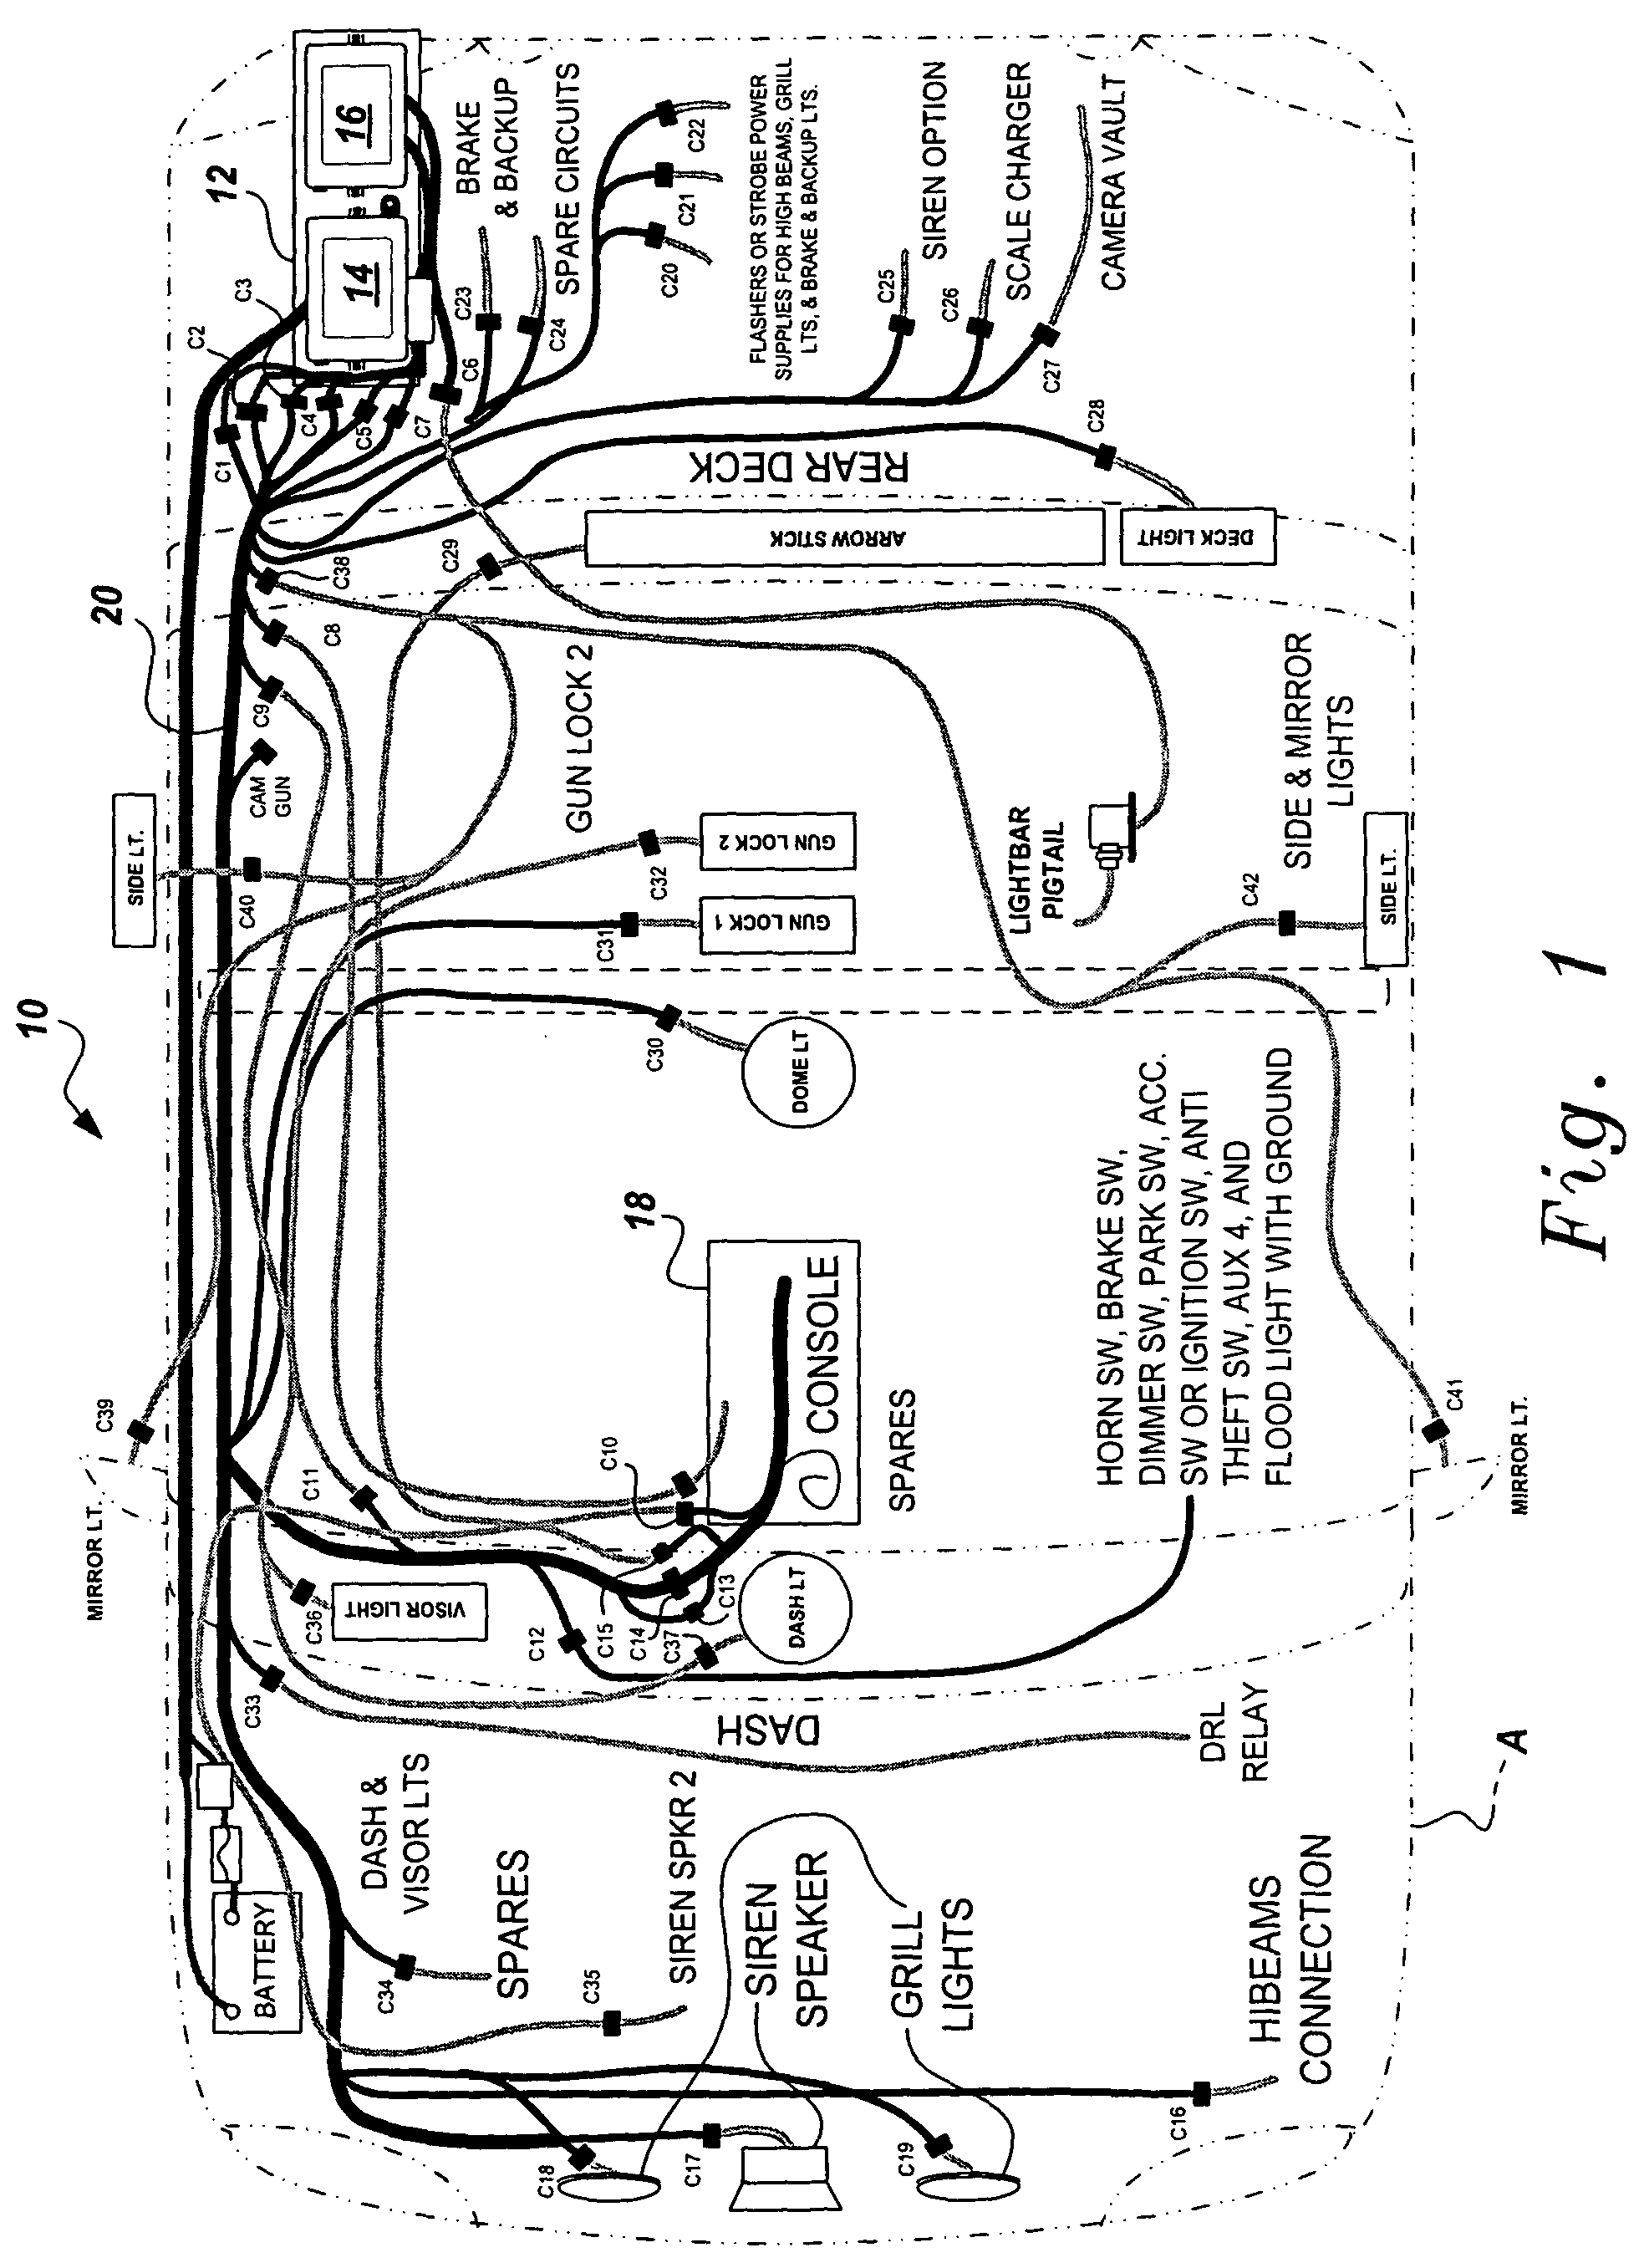 US07342325 20080311 D00001 cat sr4 wiring diagram wiring automotive wiring diagrams Caterpillar SR4B Model Specification Sheet at gsmx.co